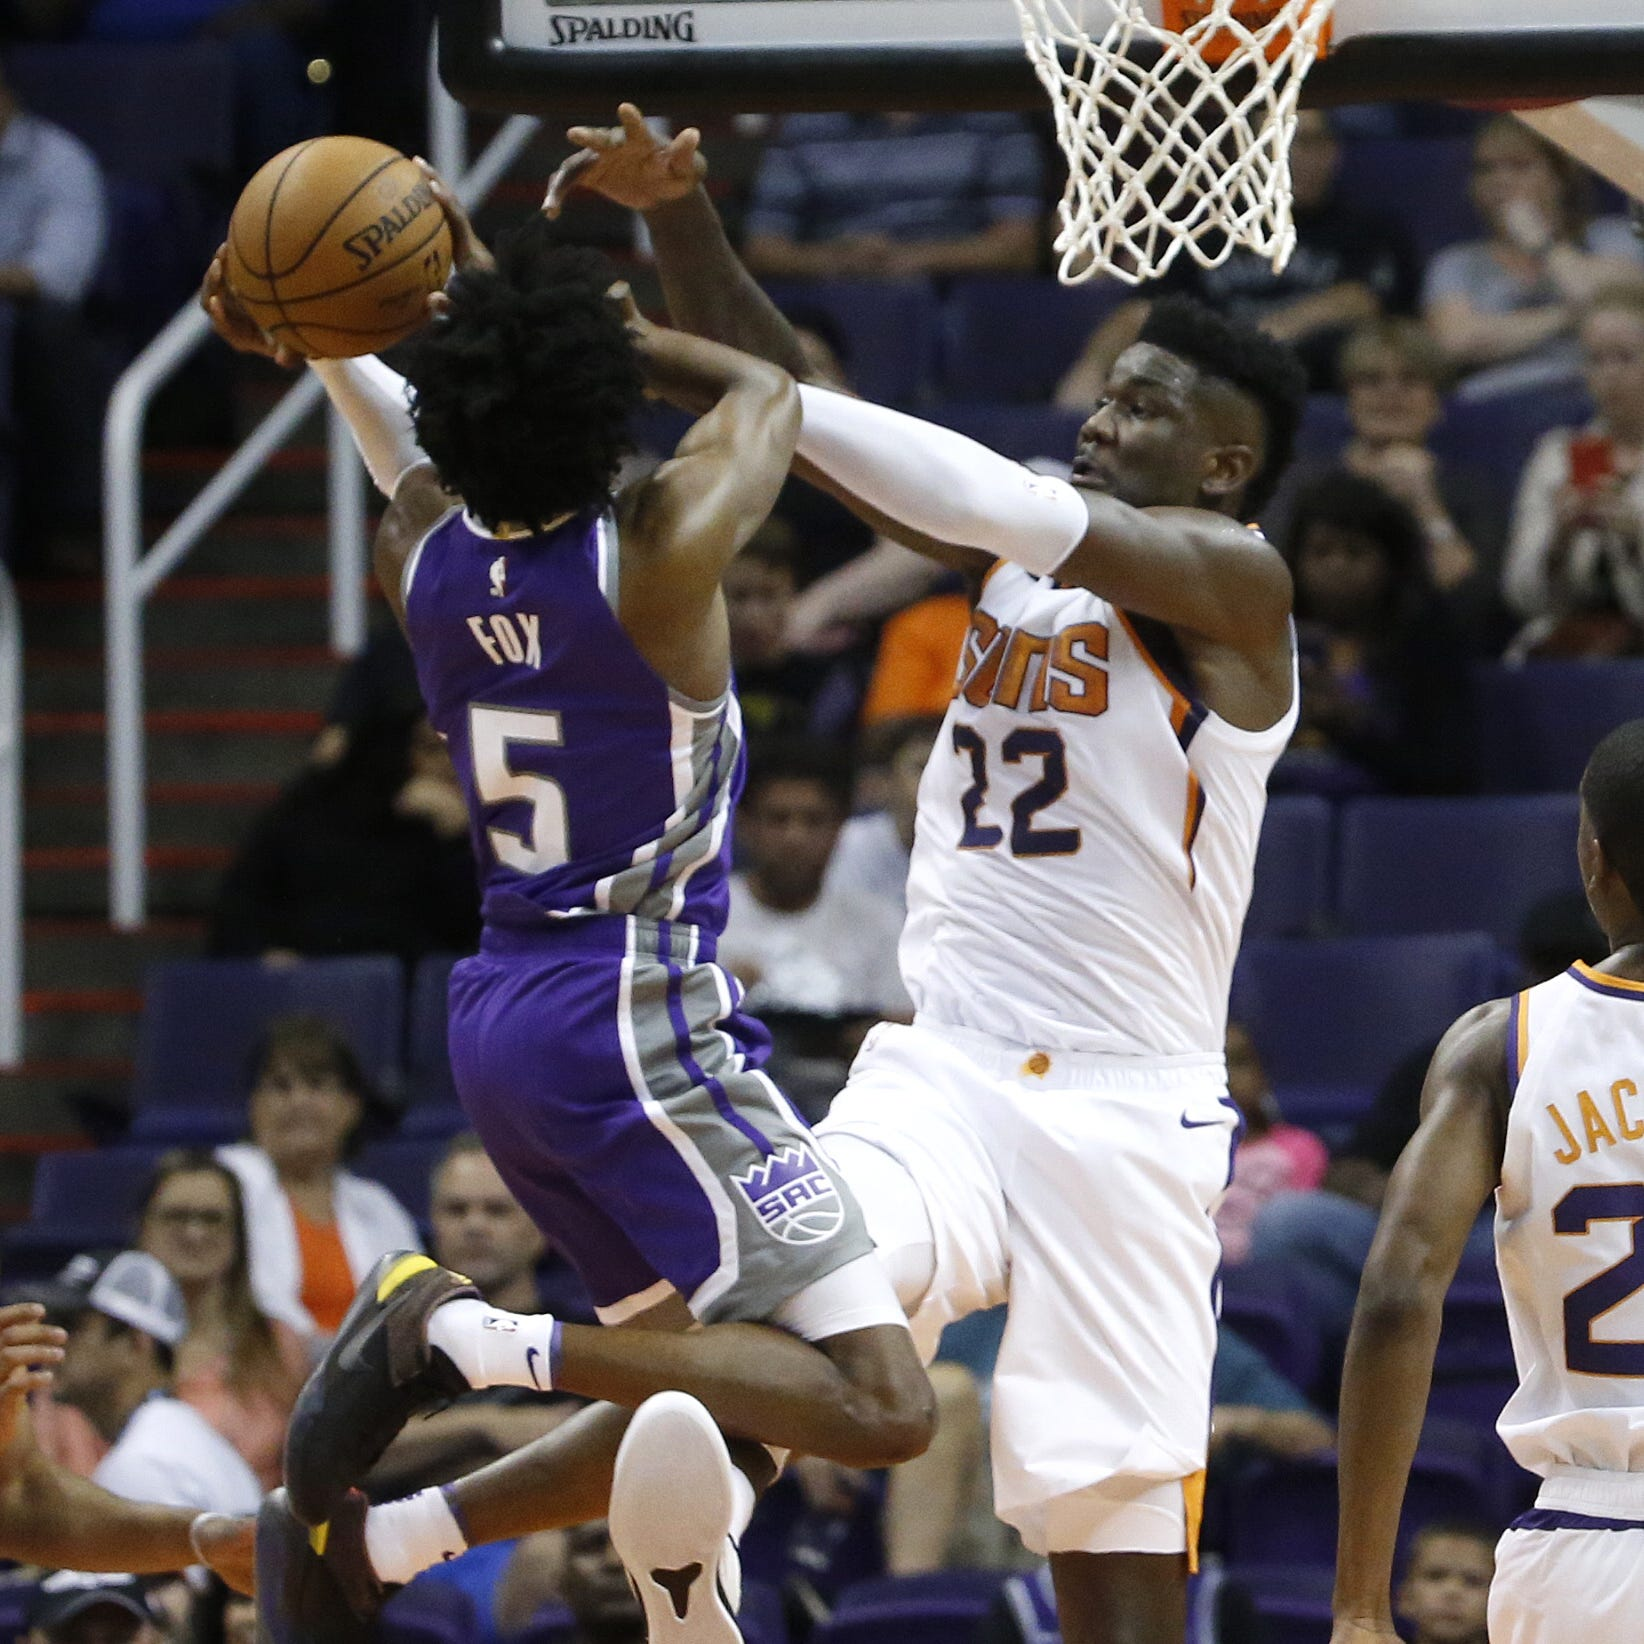 Suns and Kings are both young teams, but Sacramento is already on a winning track